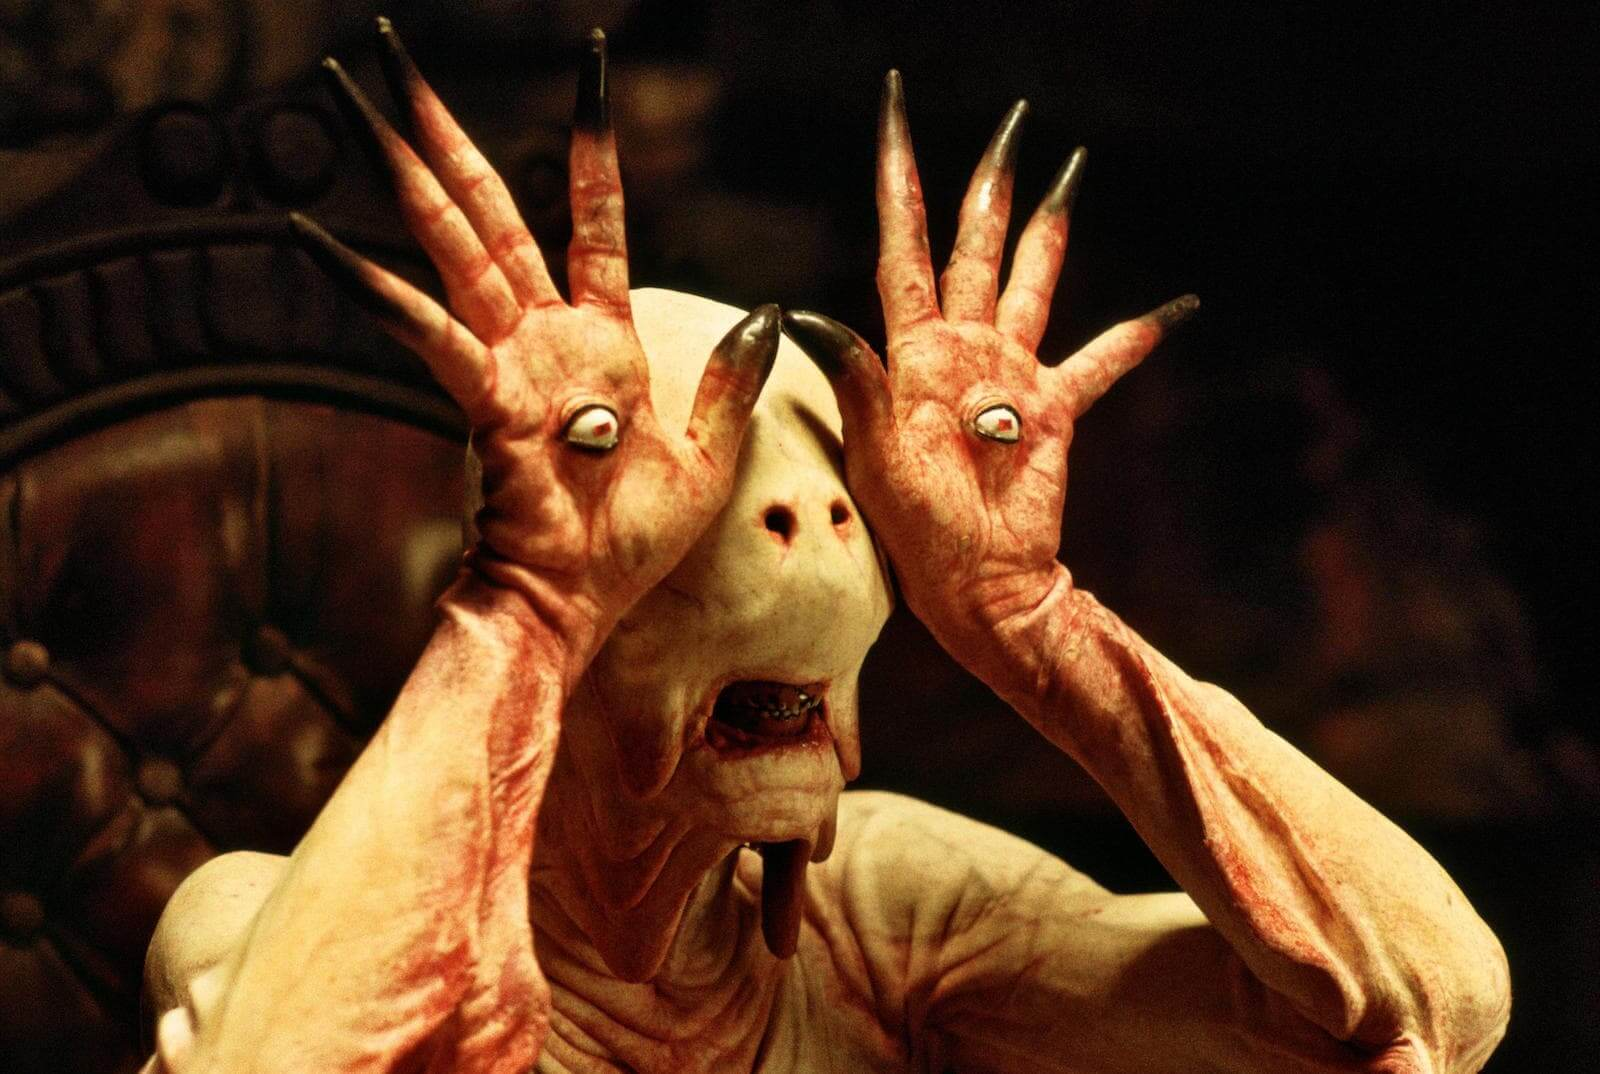 Wounds and Monsters - How to Become a Special Effects Makeup Artist - Pans Labyrinth